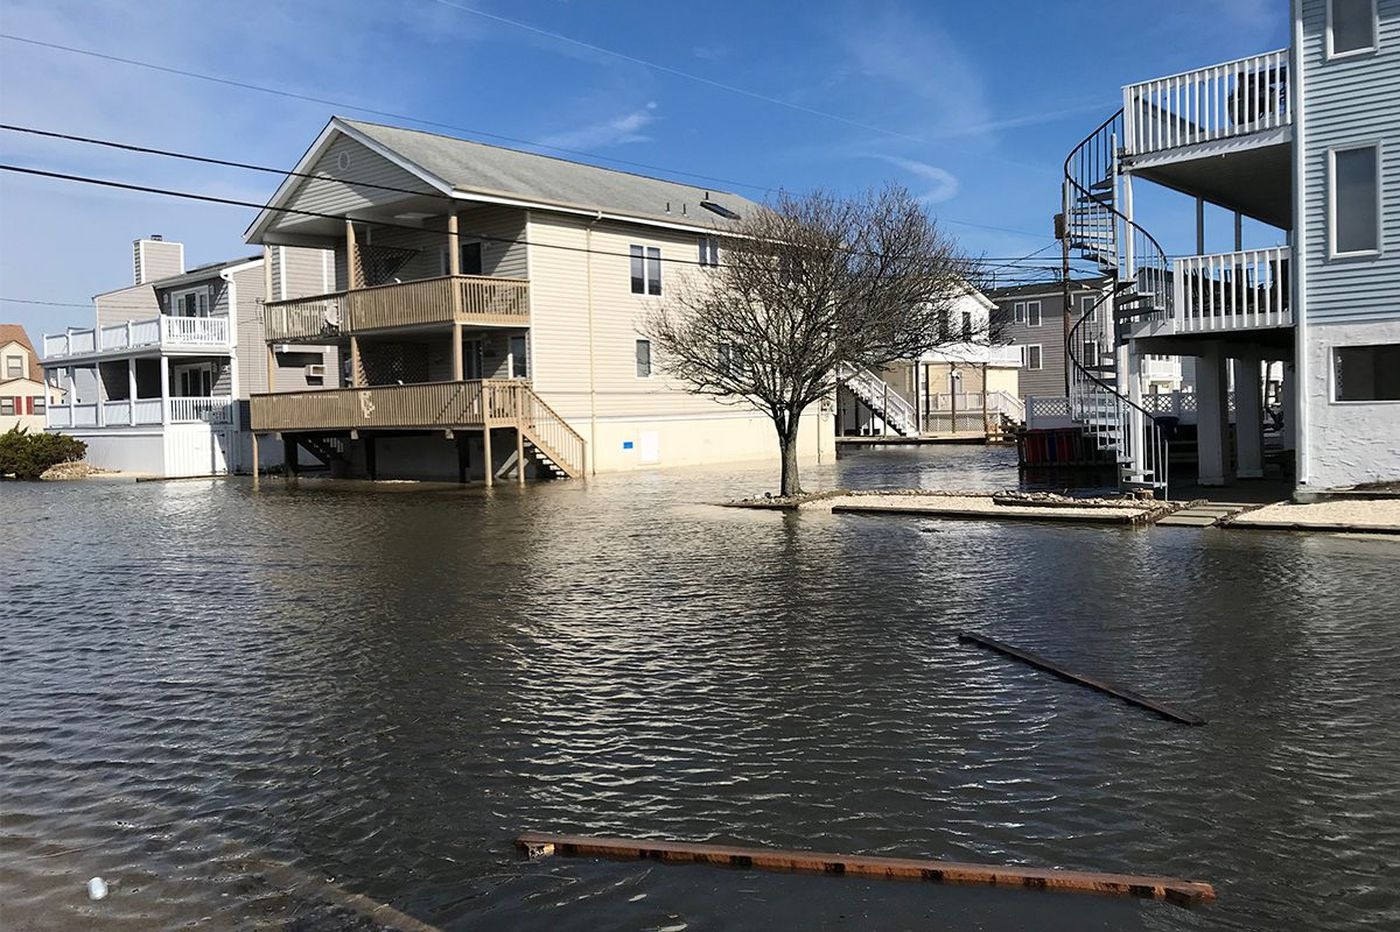 Jersey Shore family traditions threatened by climate change | Opinion